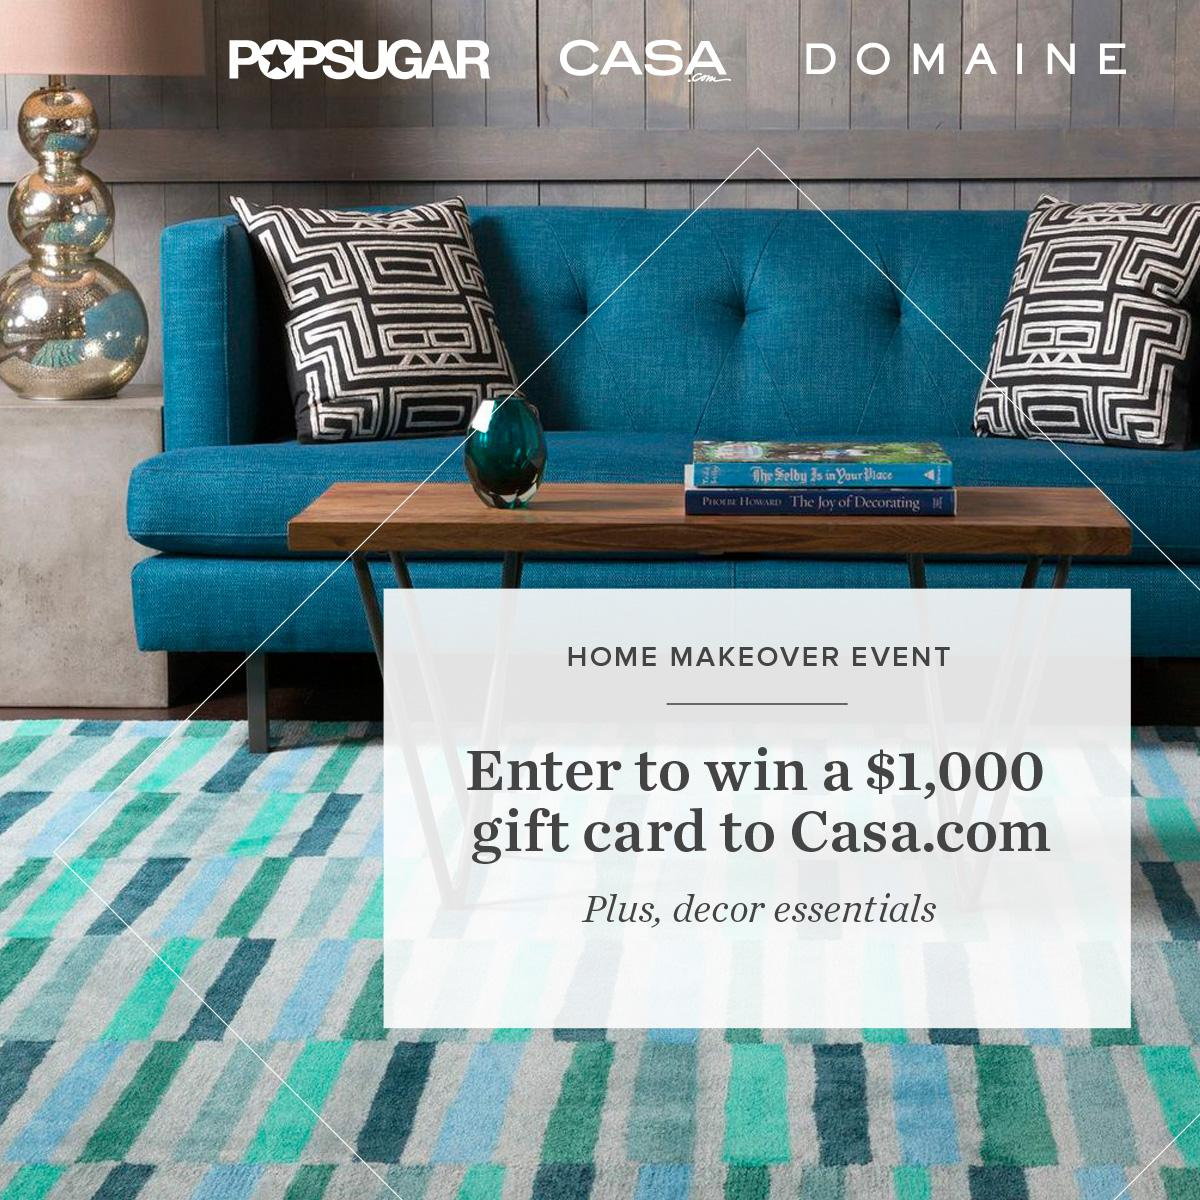 Enter on Popsugar for a chance to win a $1,000 gift card to http://t.co/ekANPuGzzC! http://t.co/PePJxxUVoF http://t.co/IBsXyvdUBT